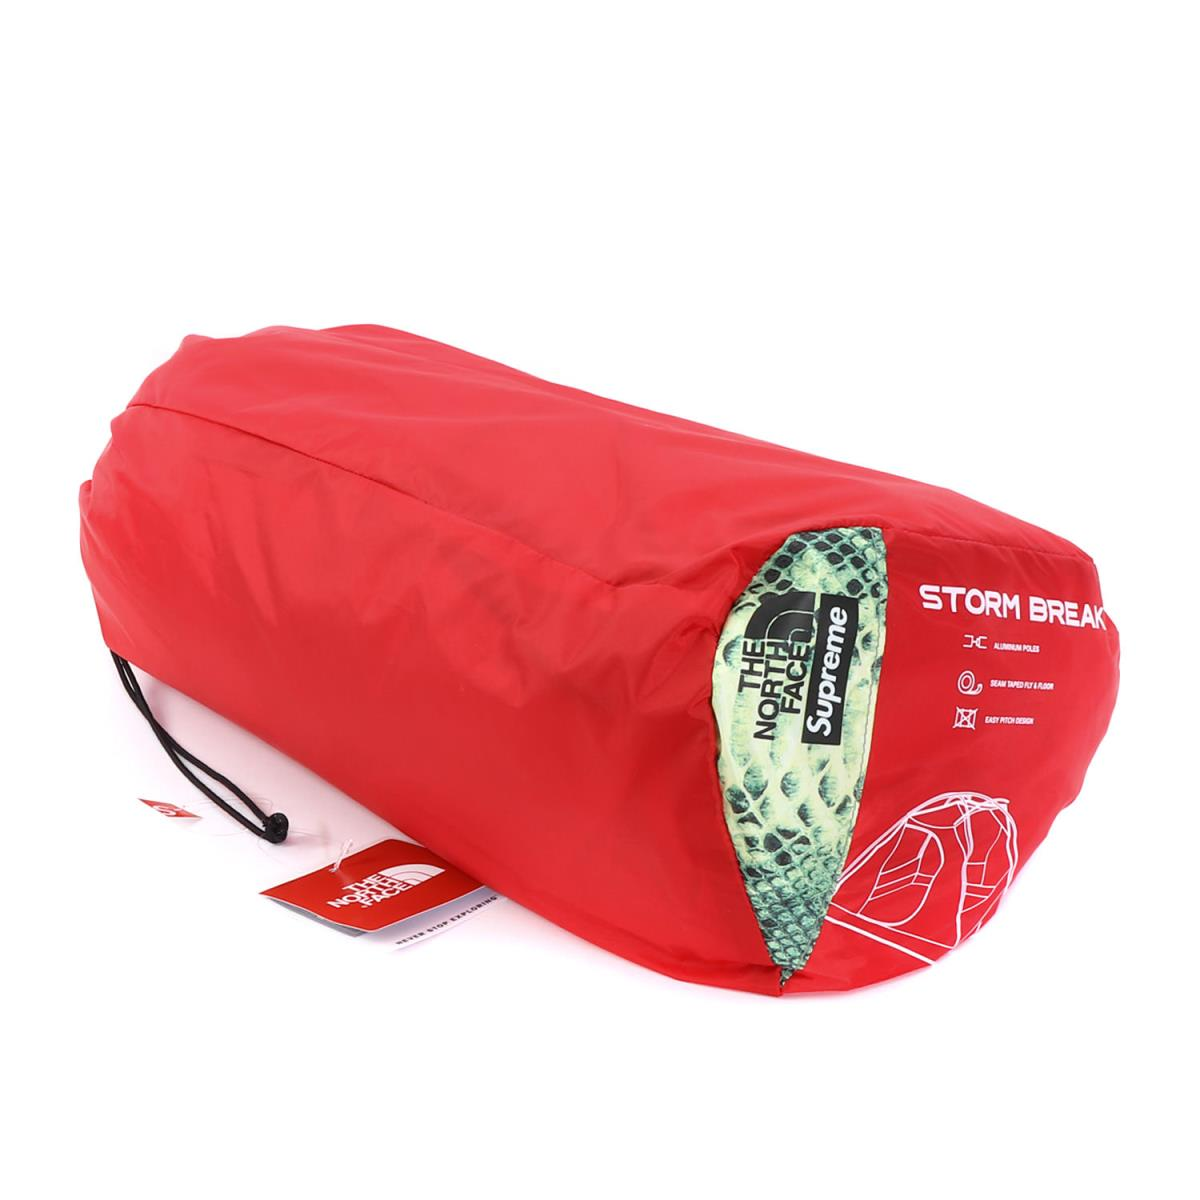 Supreme (シュプリーム) 18S/S ×THE NORTH FACE スネーク柄テント(Snakeskin Taped Seam 3 Tent) グリーンスネーク 【K1960】【あす楽☆対応可】